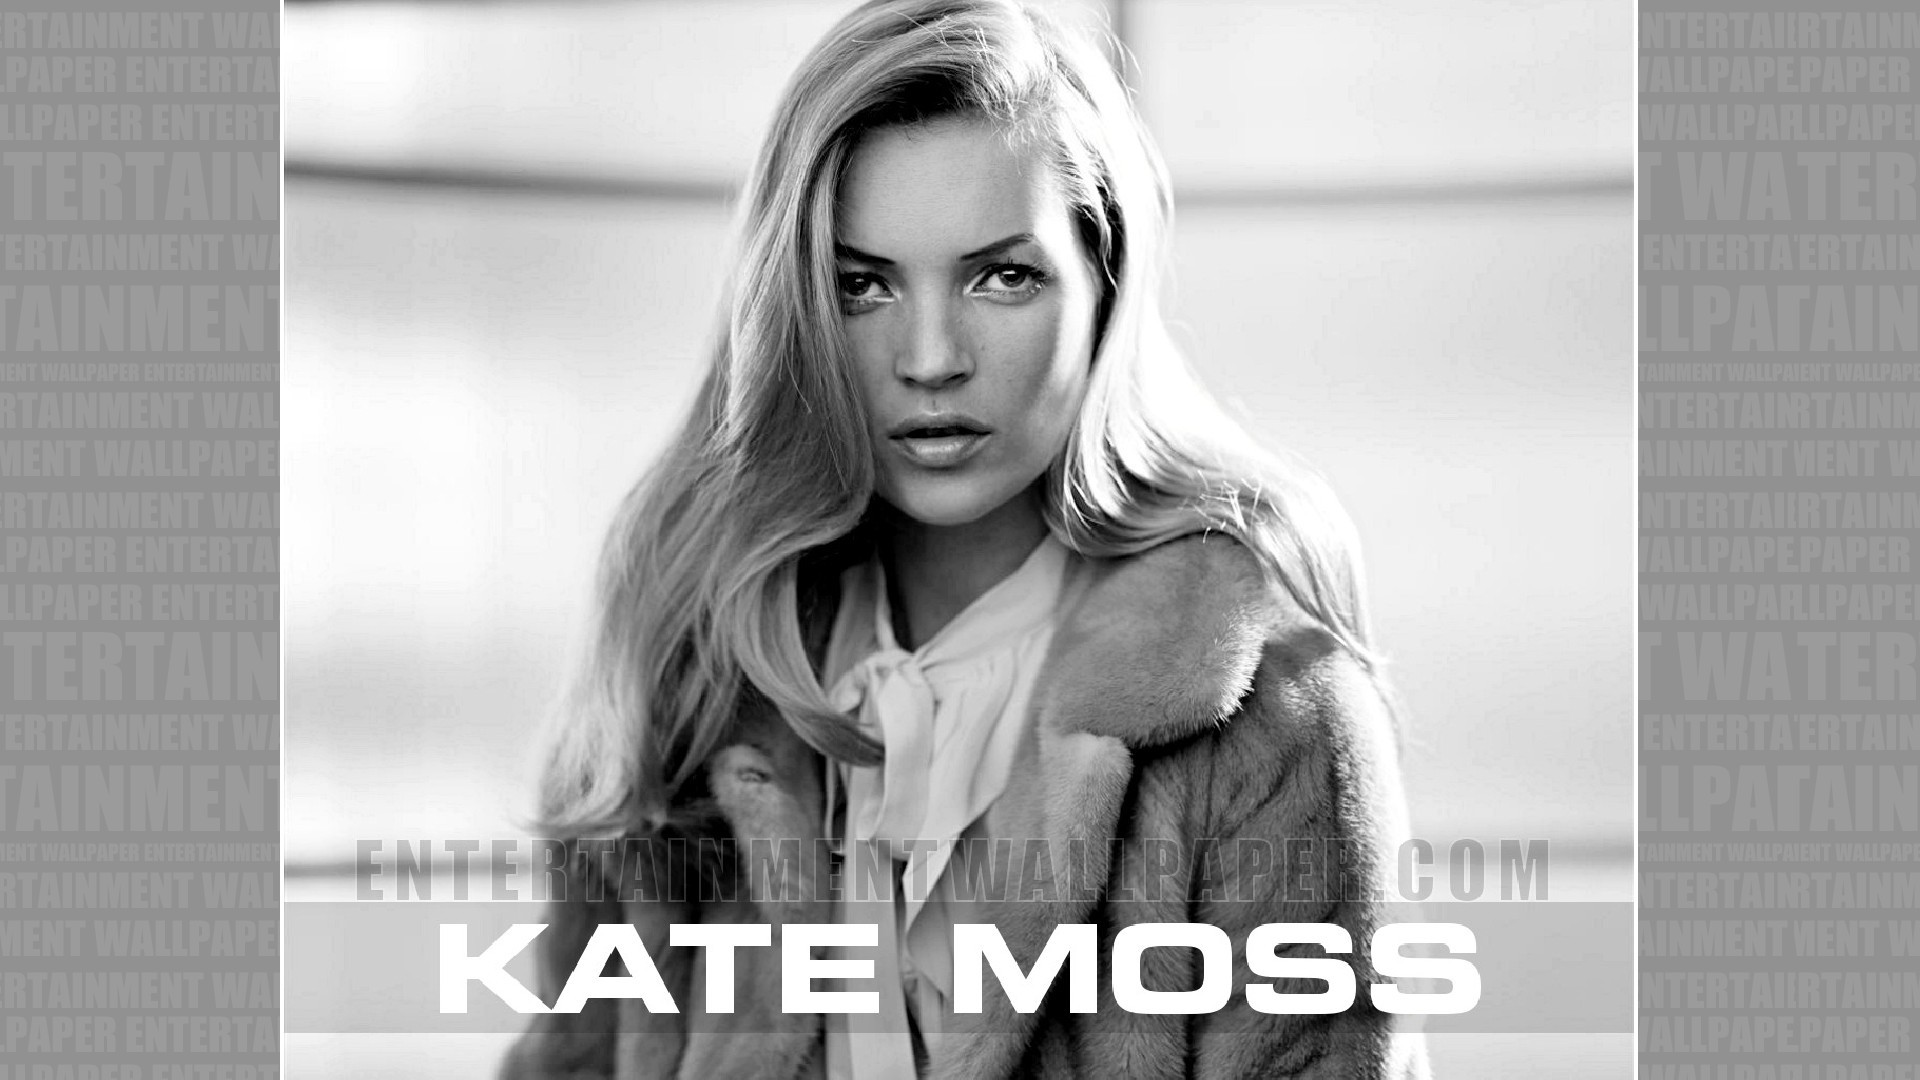 Res: 1920x1080, Kate Moss Wallpaper - Original size, download now.